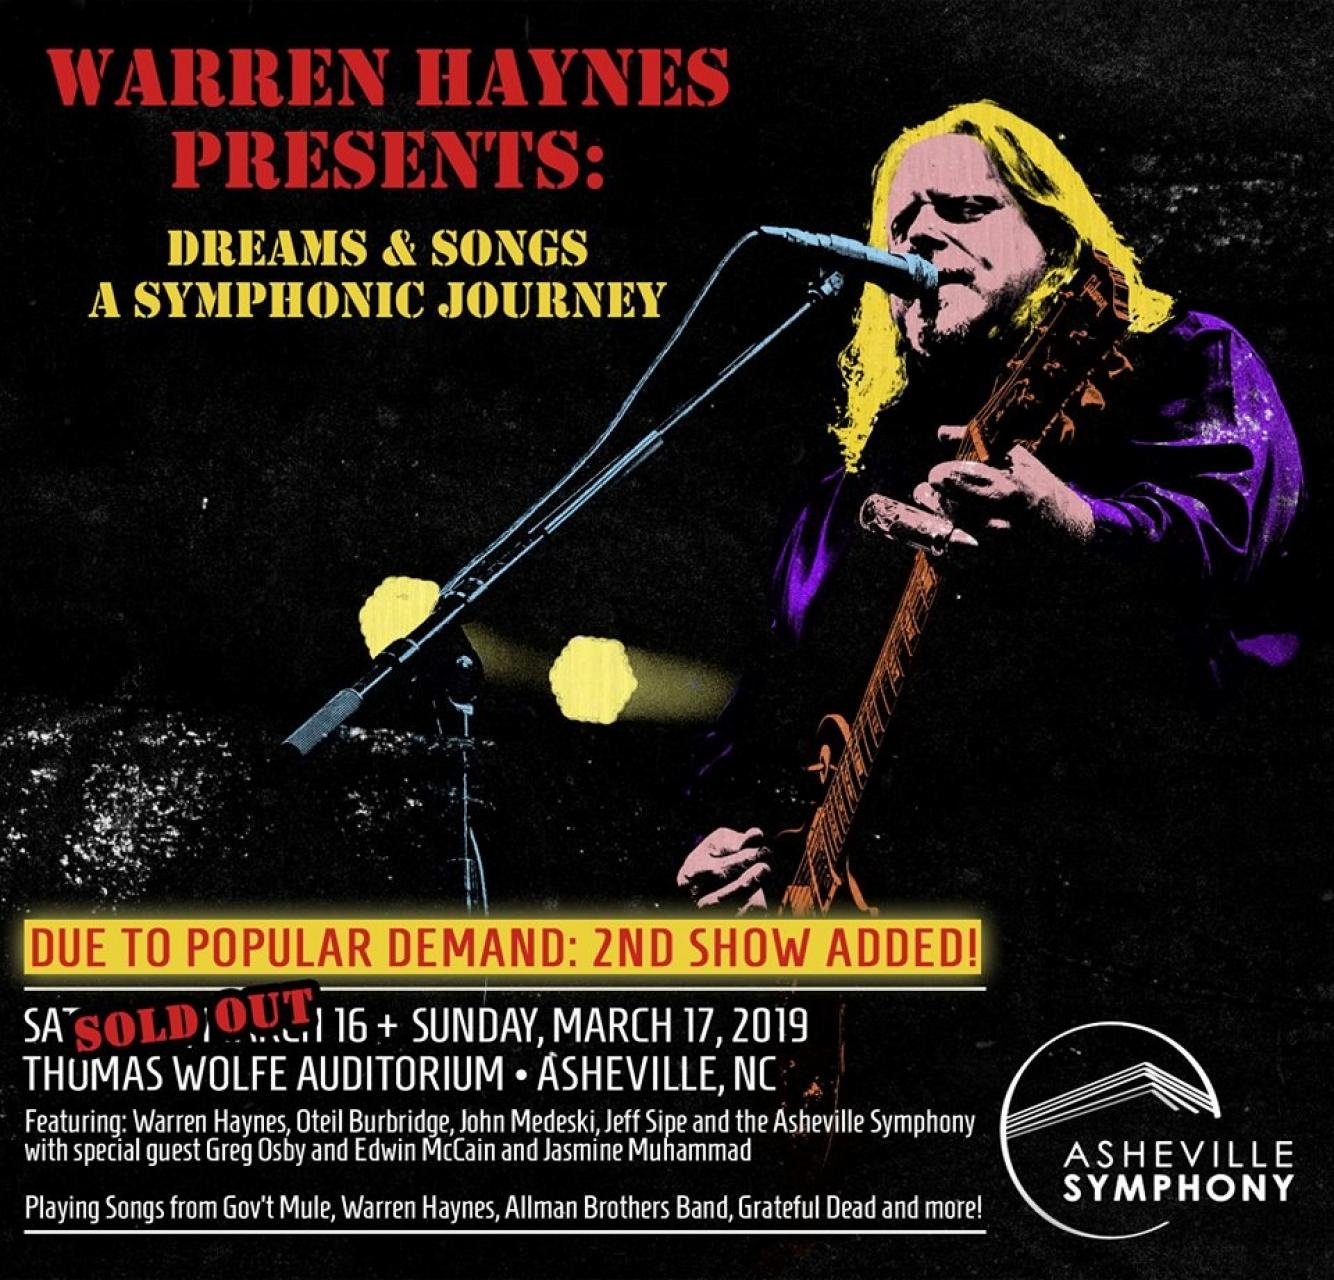 Warren Haynes will play two shows with the Asheville Symphony on March 16 and 17.